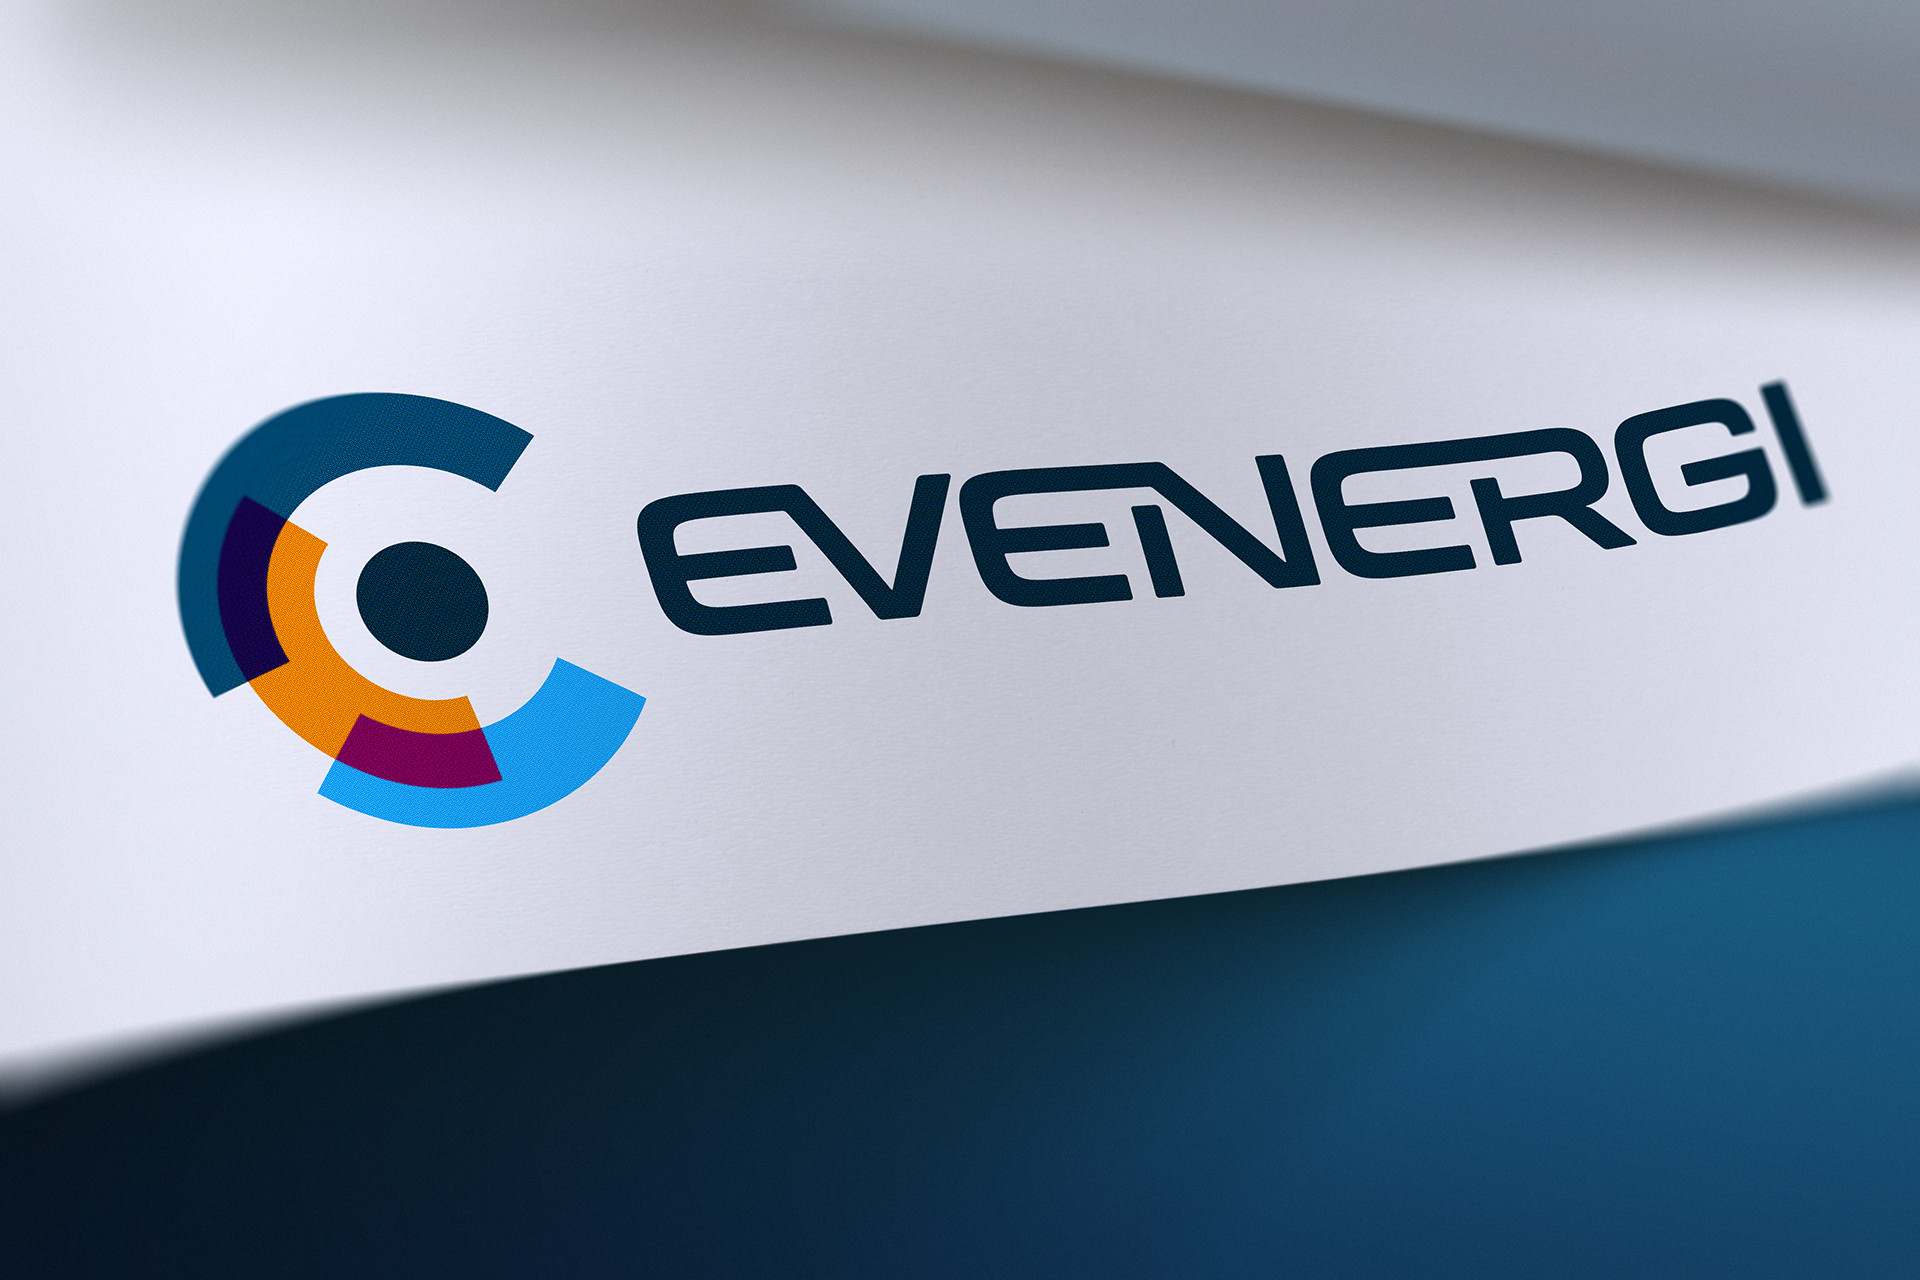 The Evenergi renewables brand represents a contemporary next generation automotive identity, built for the future.